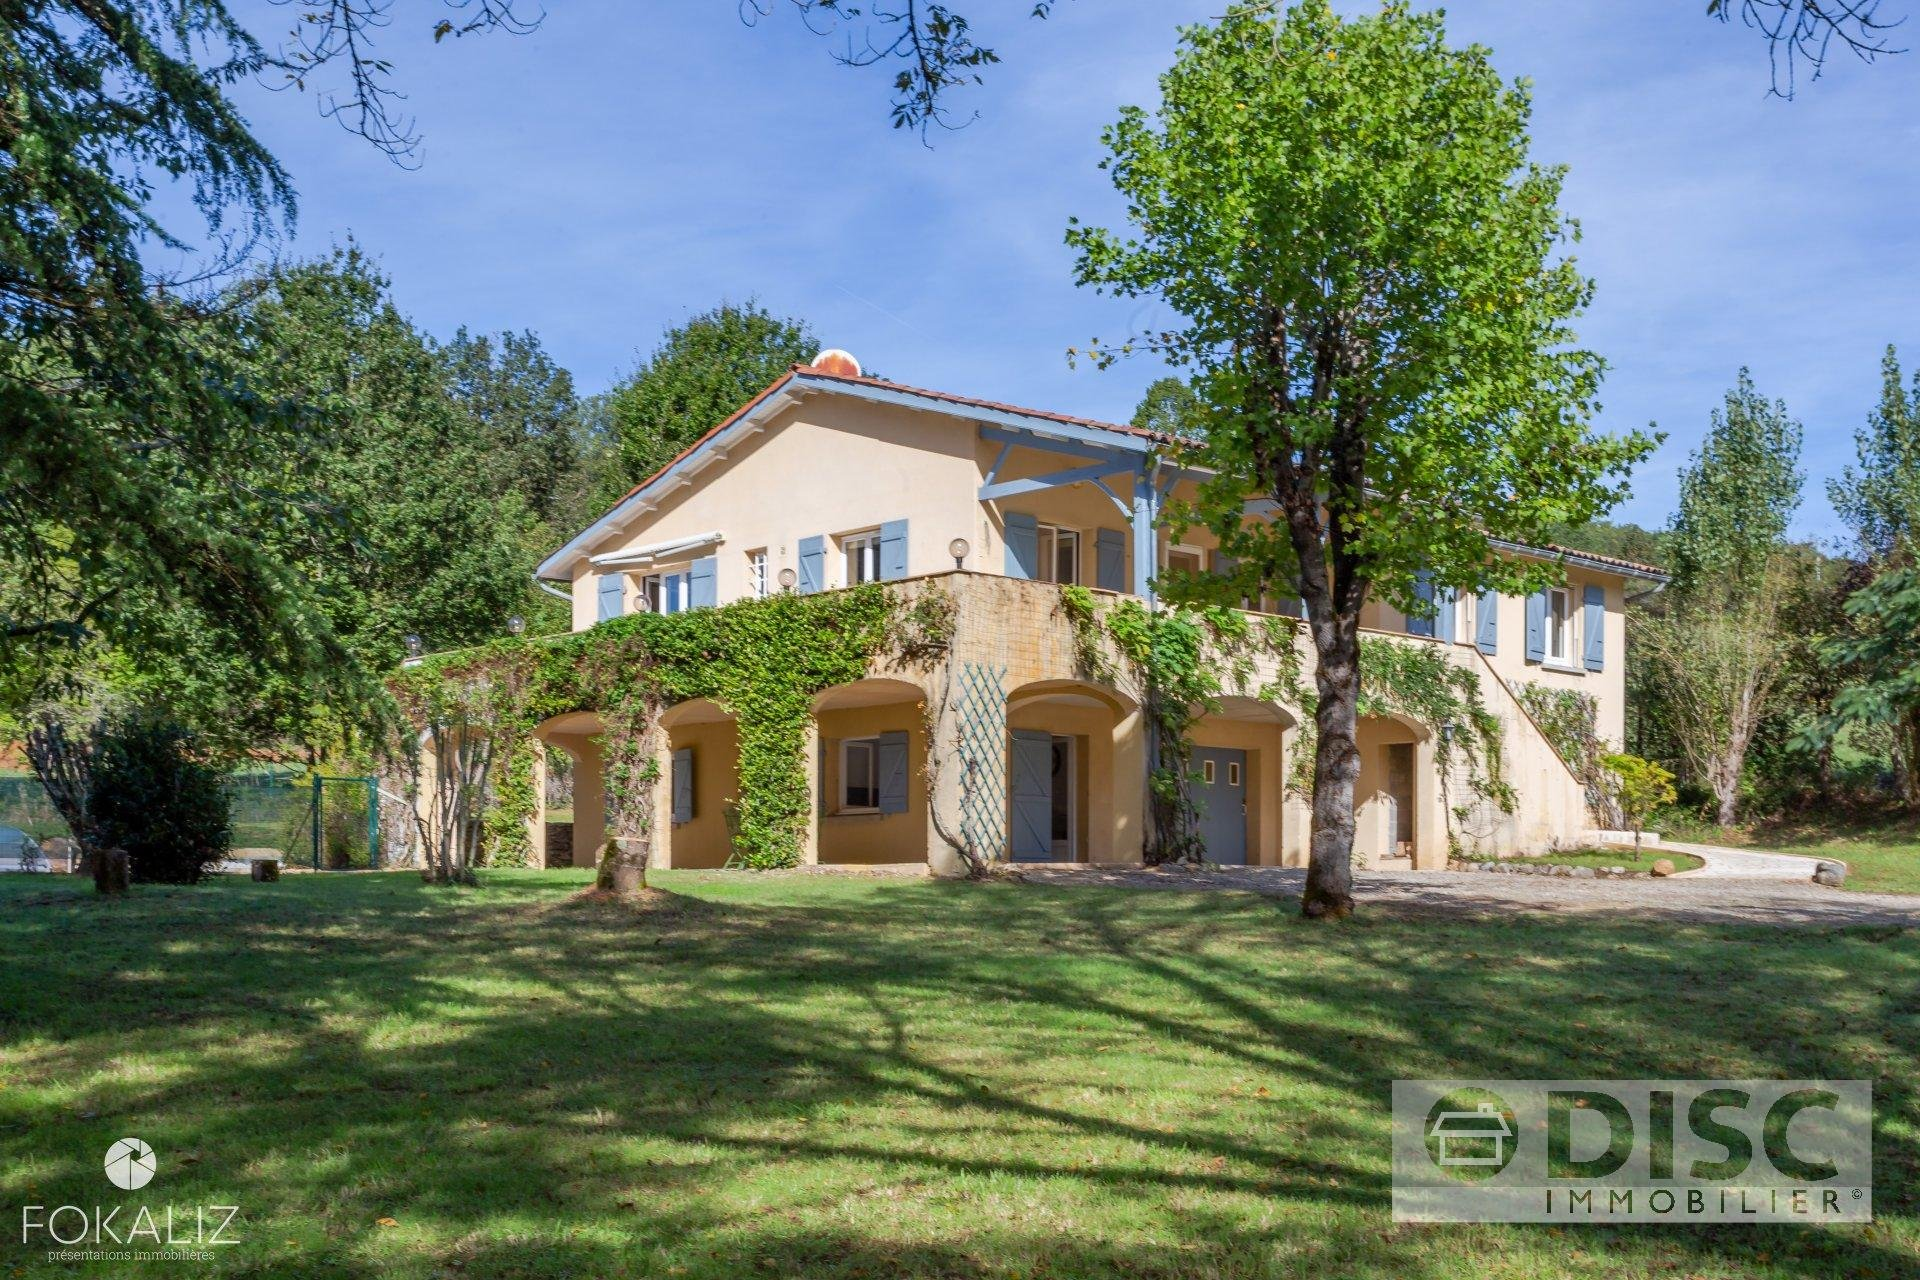 Beautiful house with swimming pool and large garden 1km from a village.